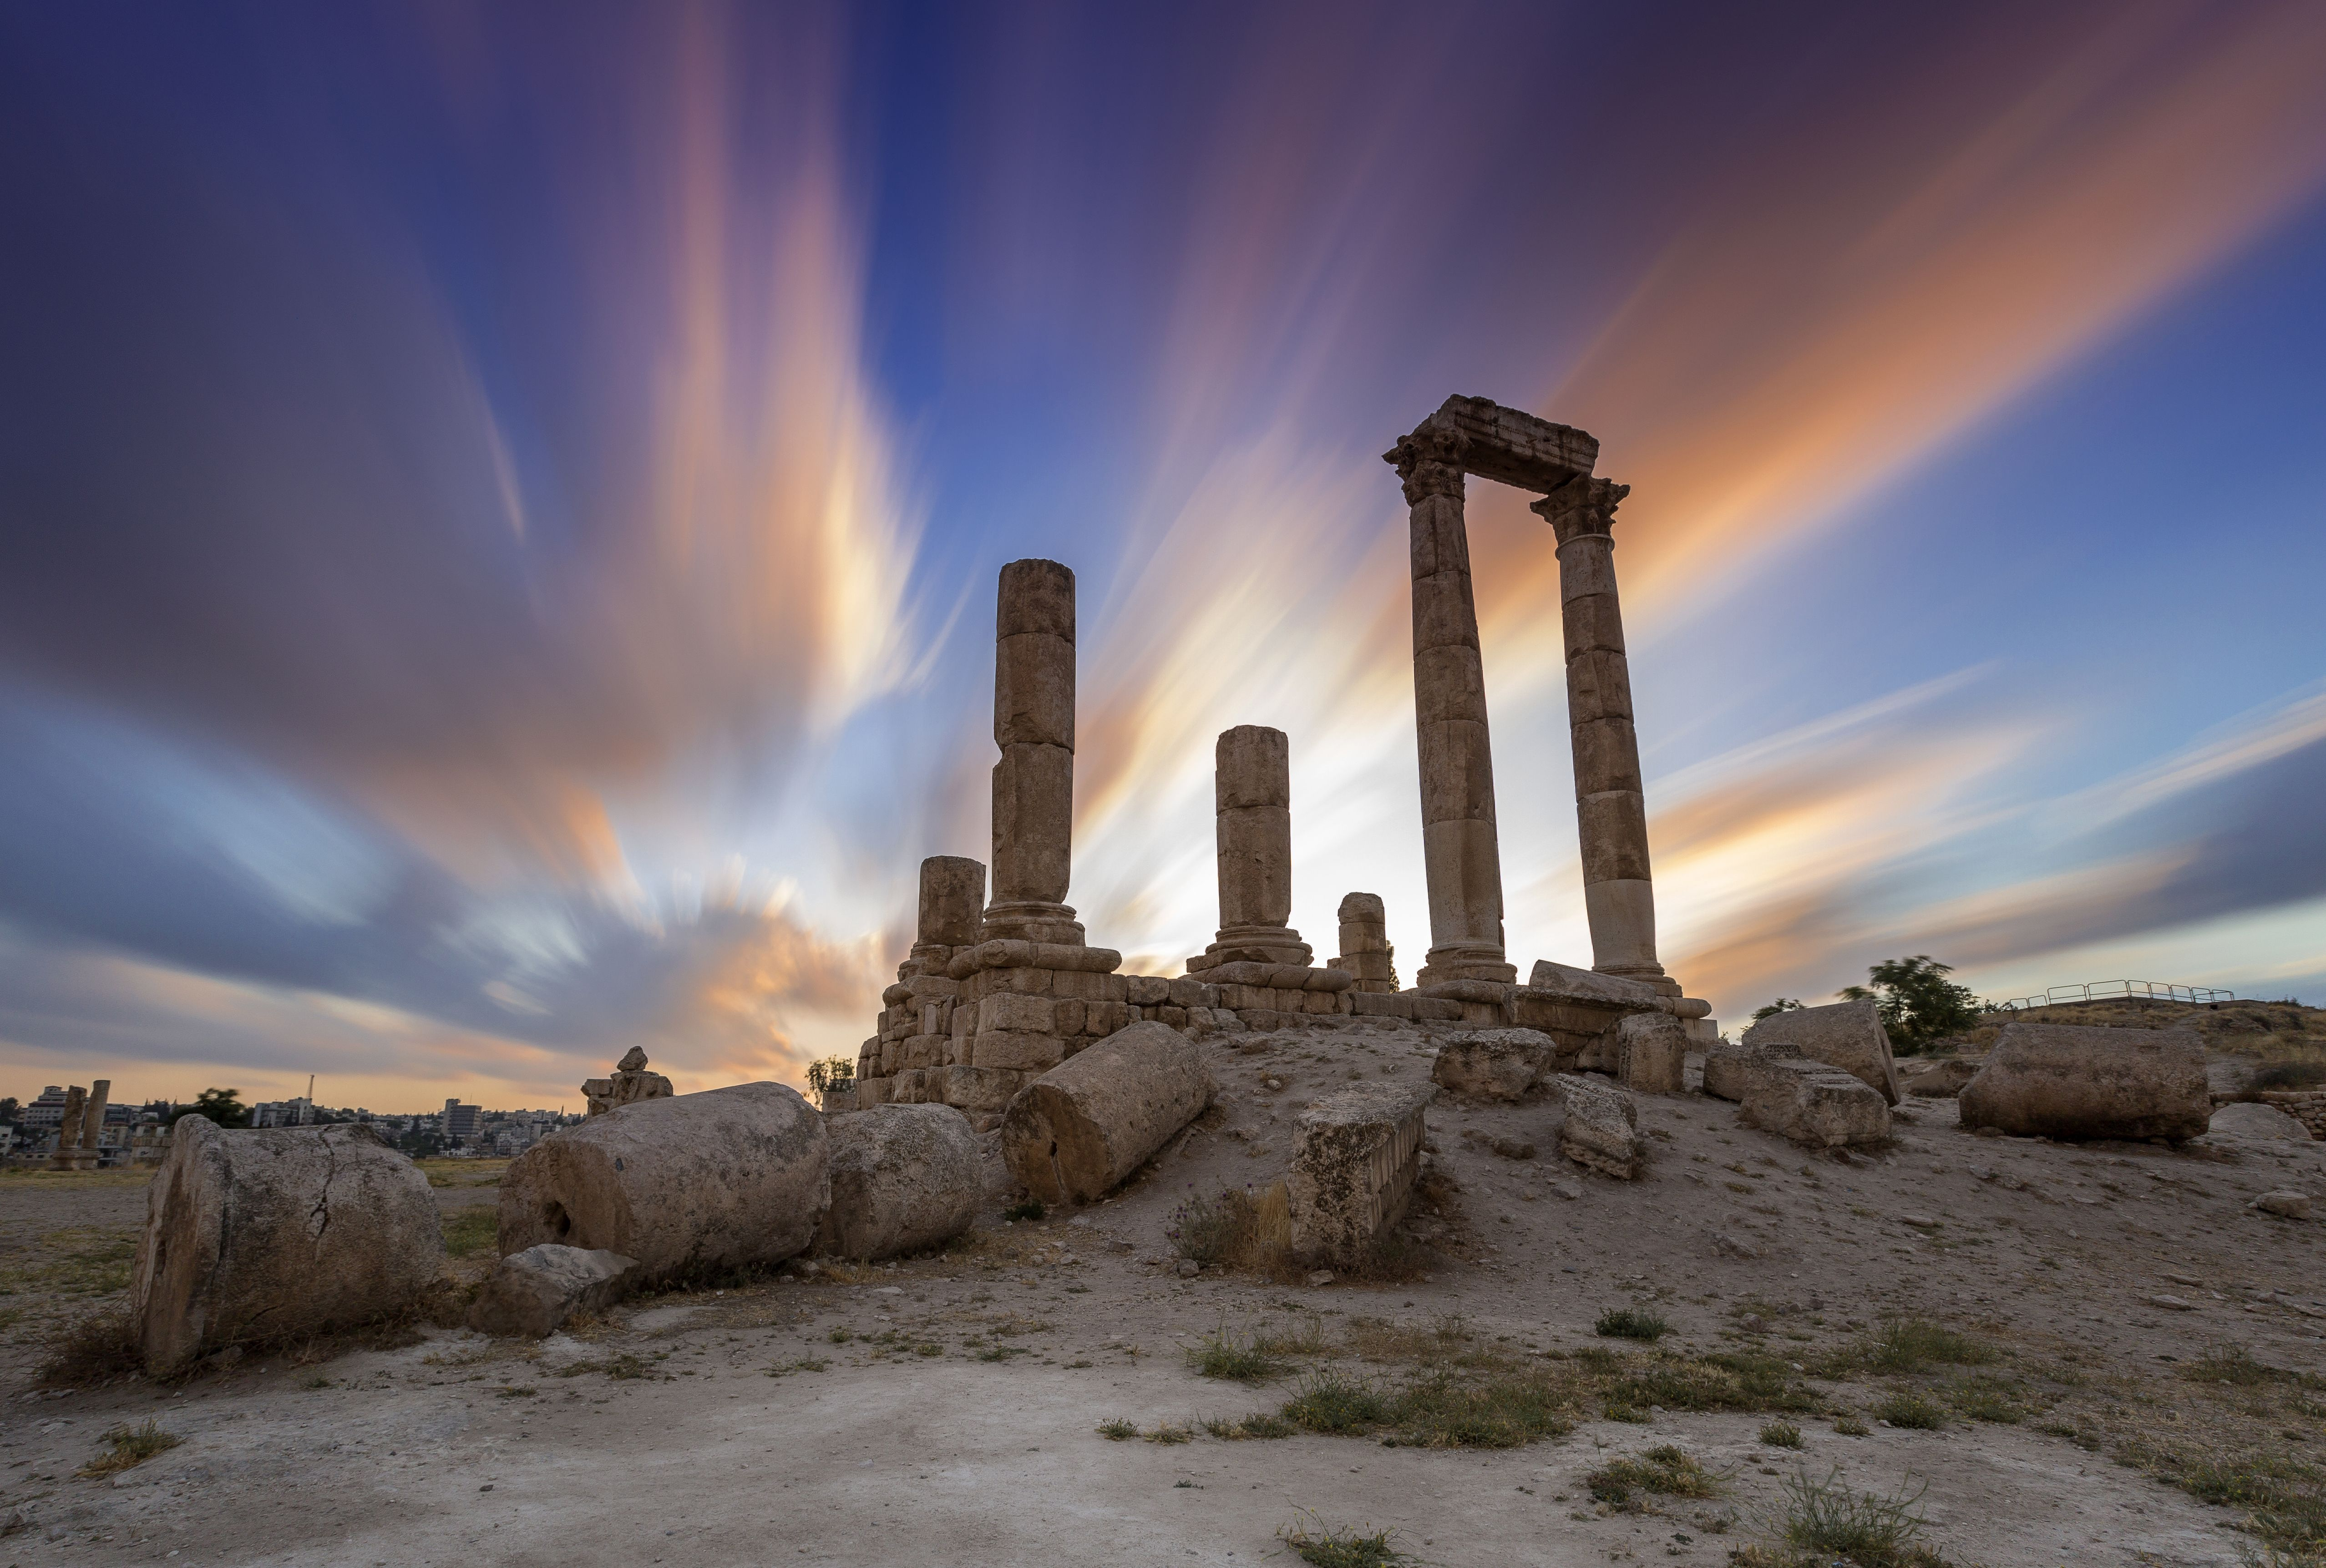 The sun sets behind the Temple of Hercules on the Amman Citadel in Jordan. An inscription on the marble indicates that the temple was constructed in the year 162 AD.